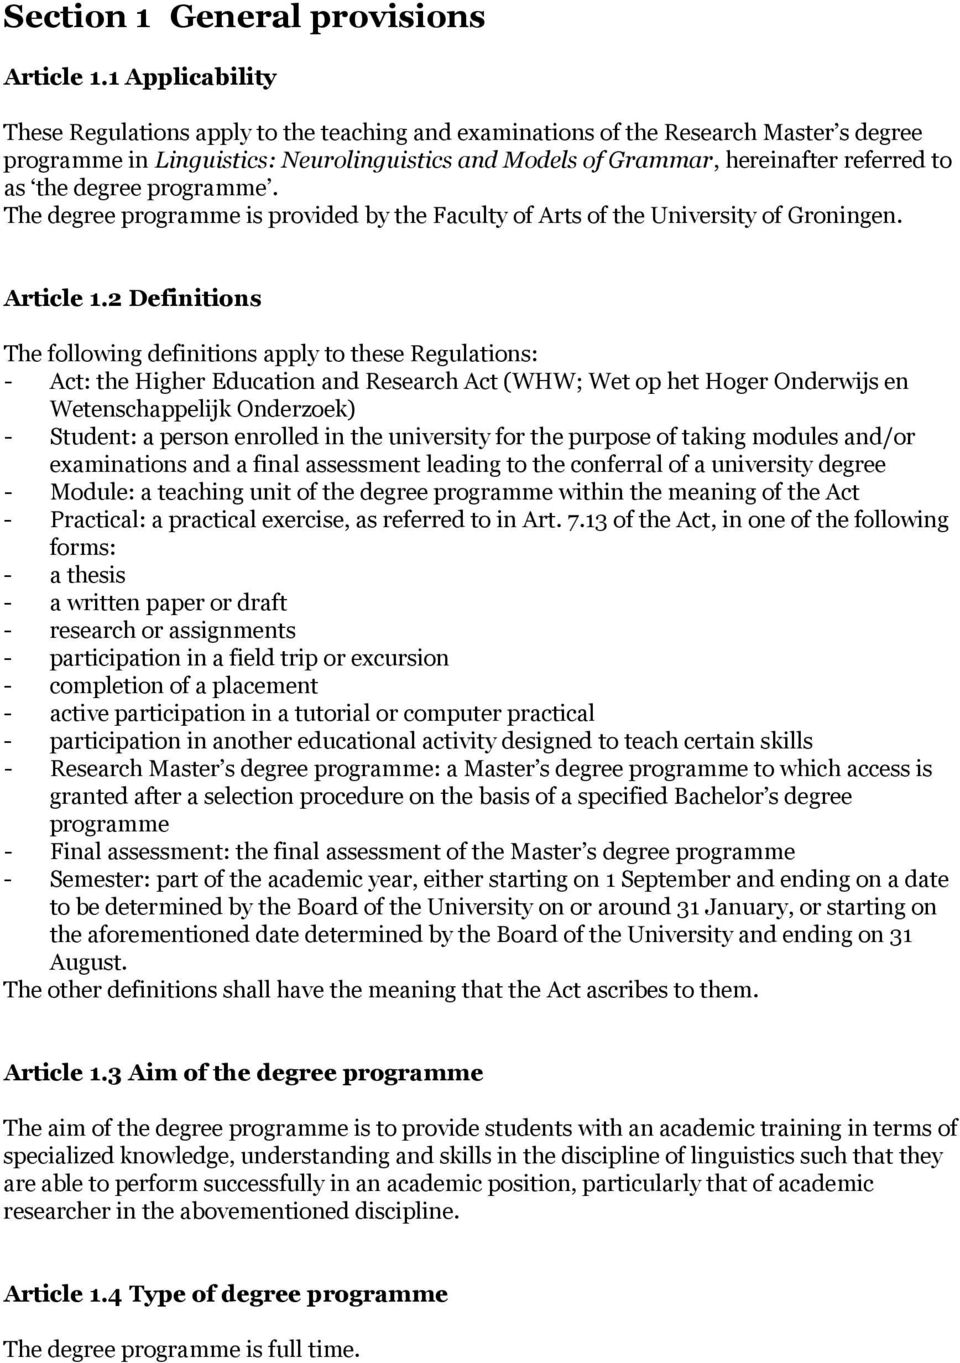 the degree programme. The degree programme is provided by the Faculty of Arts of the University of Groningen. Article 1.